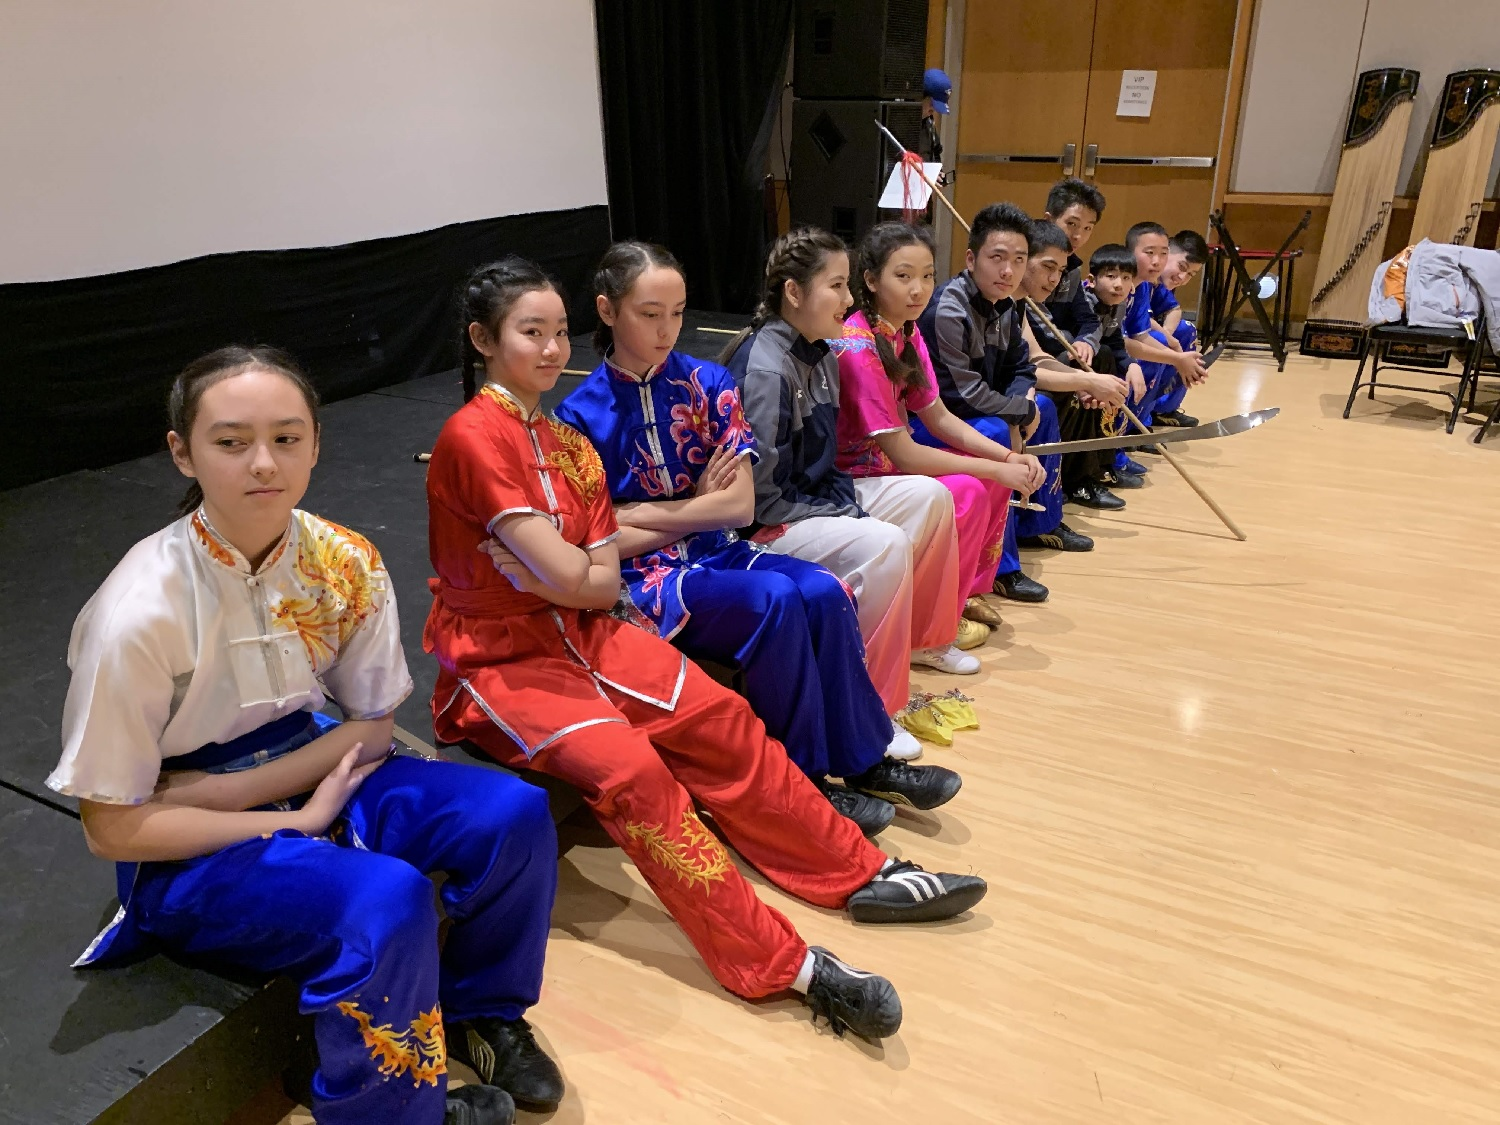 wayland-li-wushu-china-story-demo-richmond-hill-2019-lunar-new-year-08.jpg